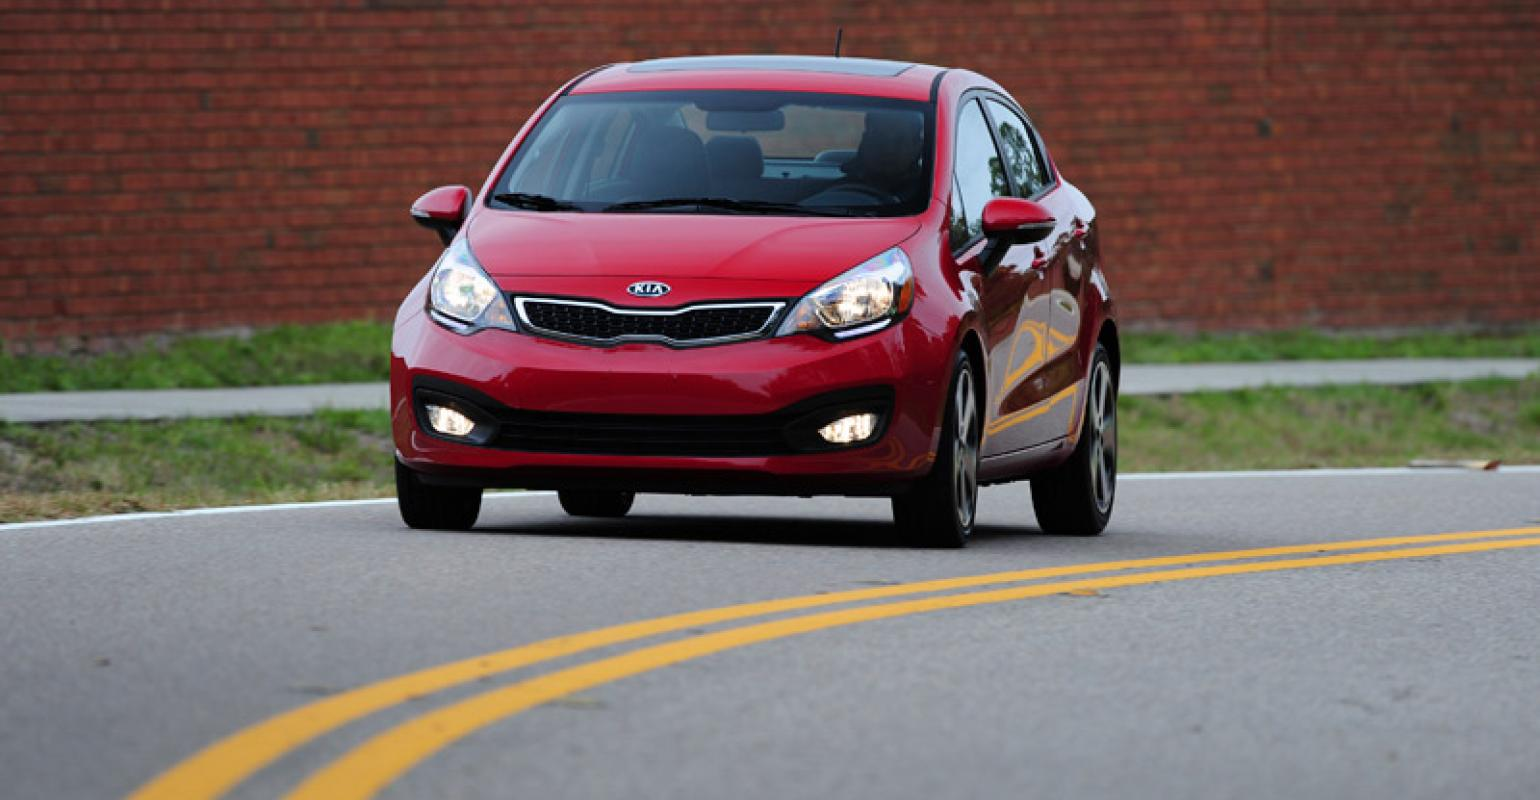 Kia says 500 price for optional ISG system on Rio above Soul to include  other fuelsaving